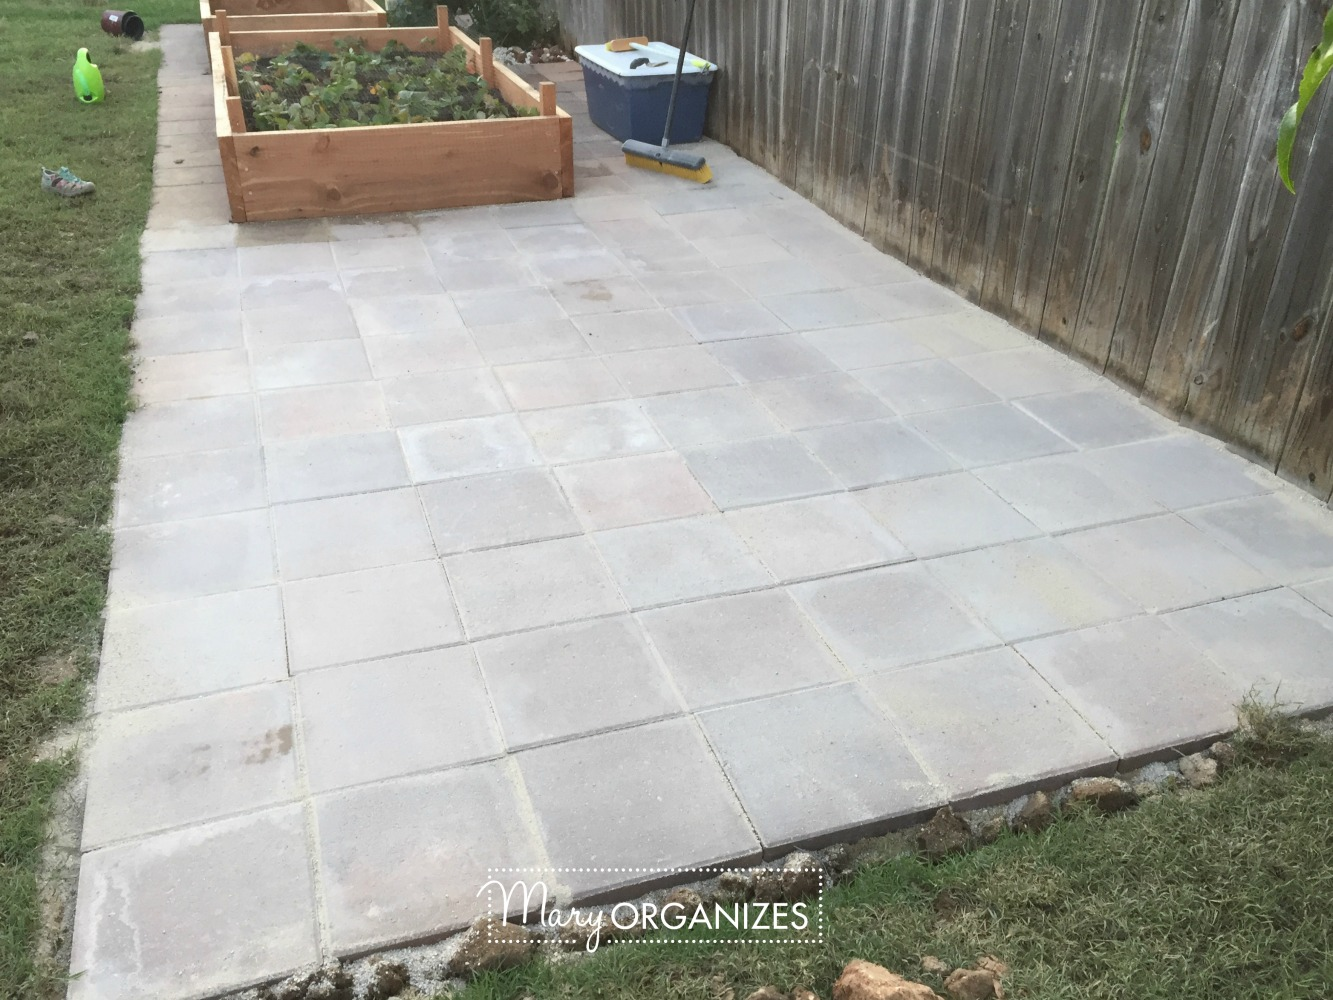 How To Install Paver Patio - My Raised Garden Foundation 18